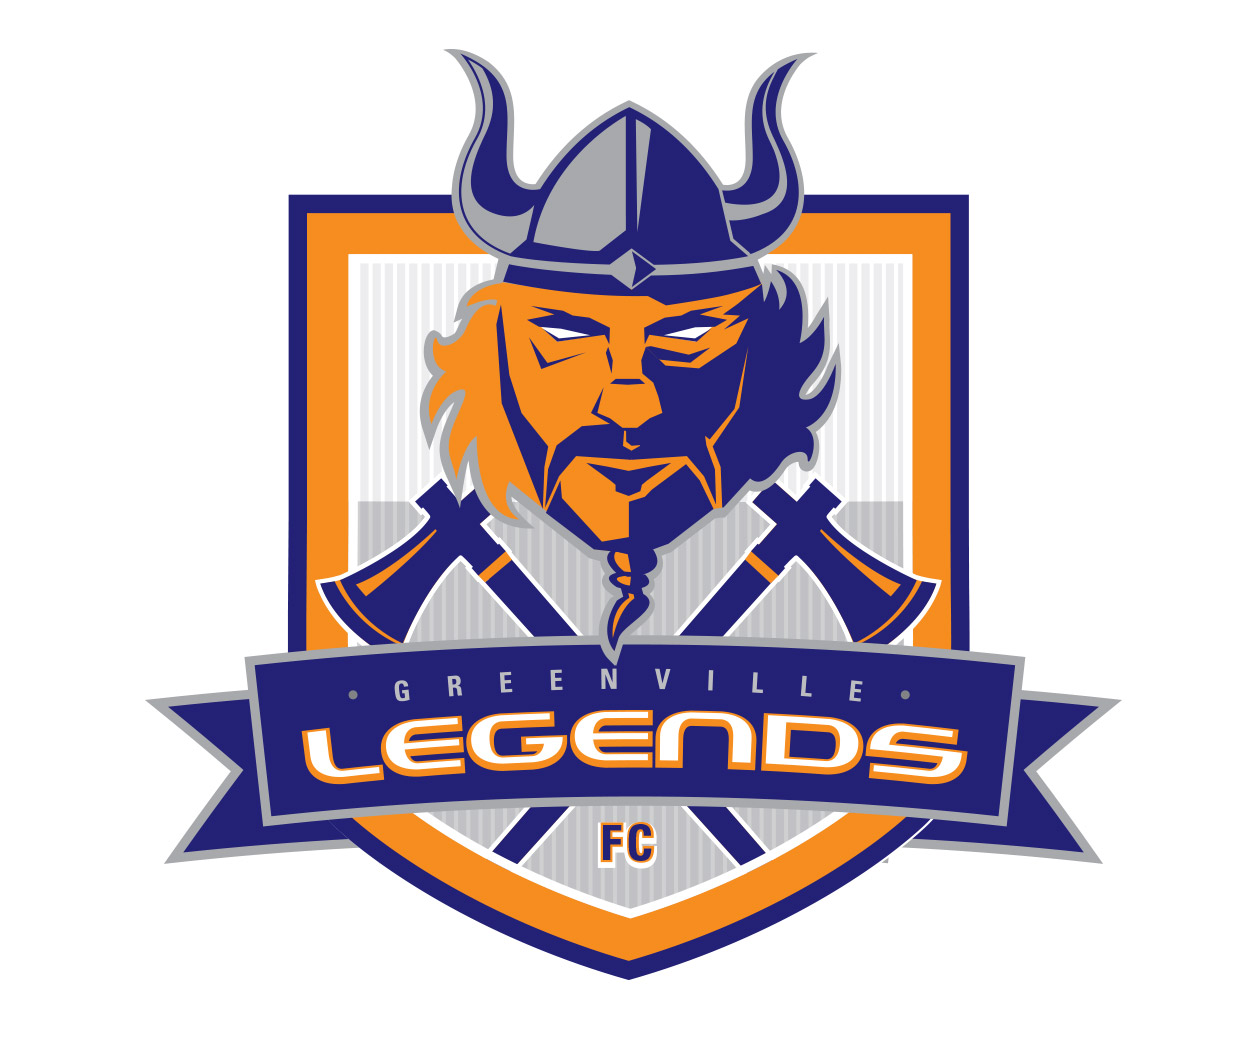 custom soccer logo design for the greenville legends soccer team by jordan fretz design